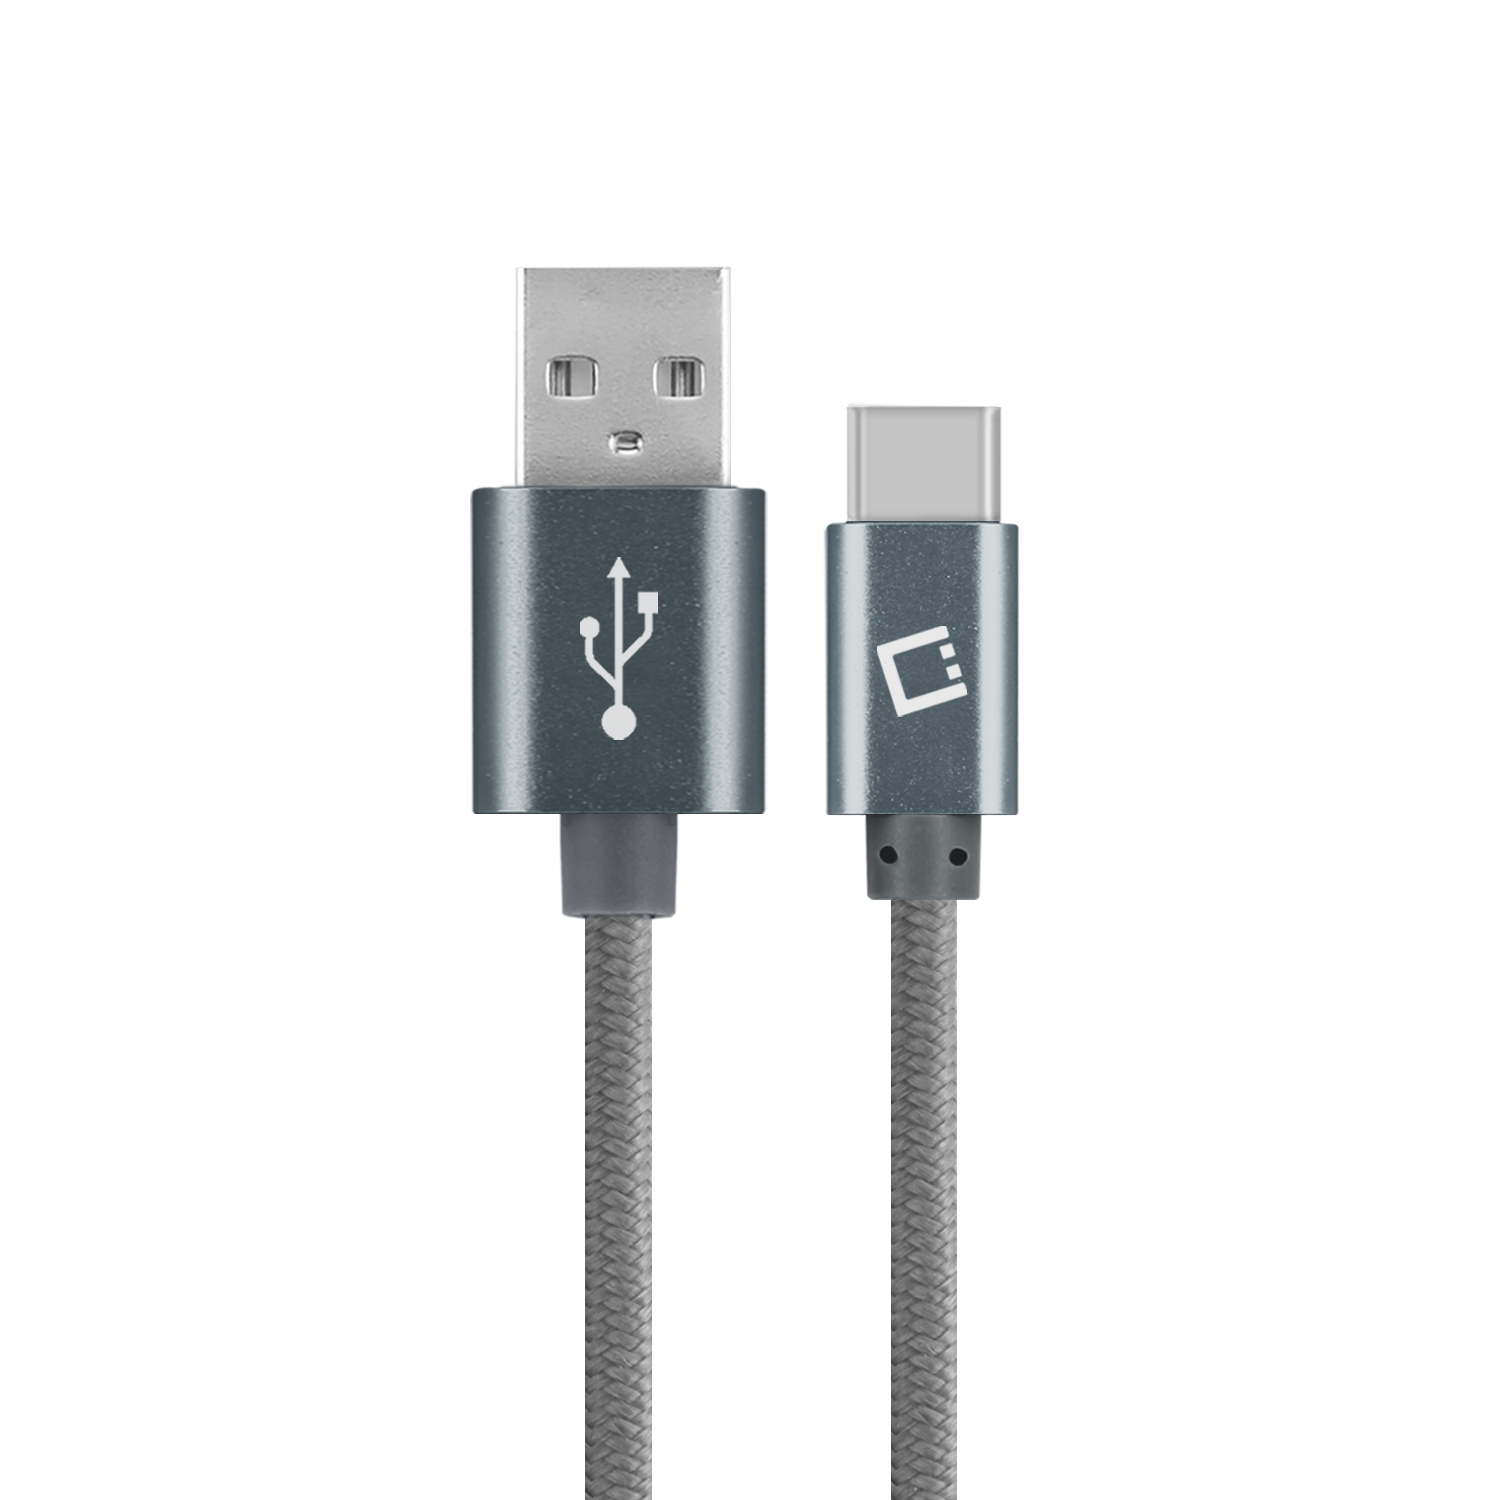 Sony Xperia XZ1 USB Type-C To Type-A Braided Data Power Cable Grey 4ft Braided